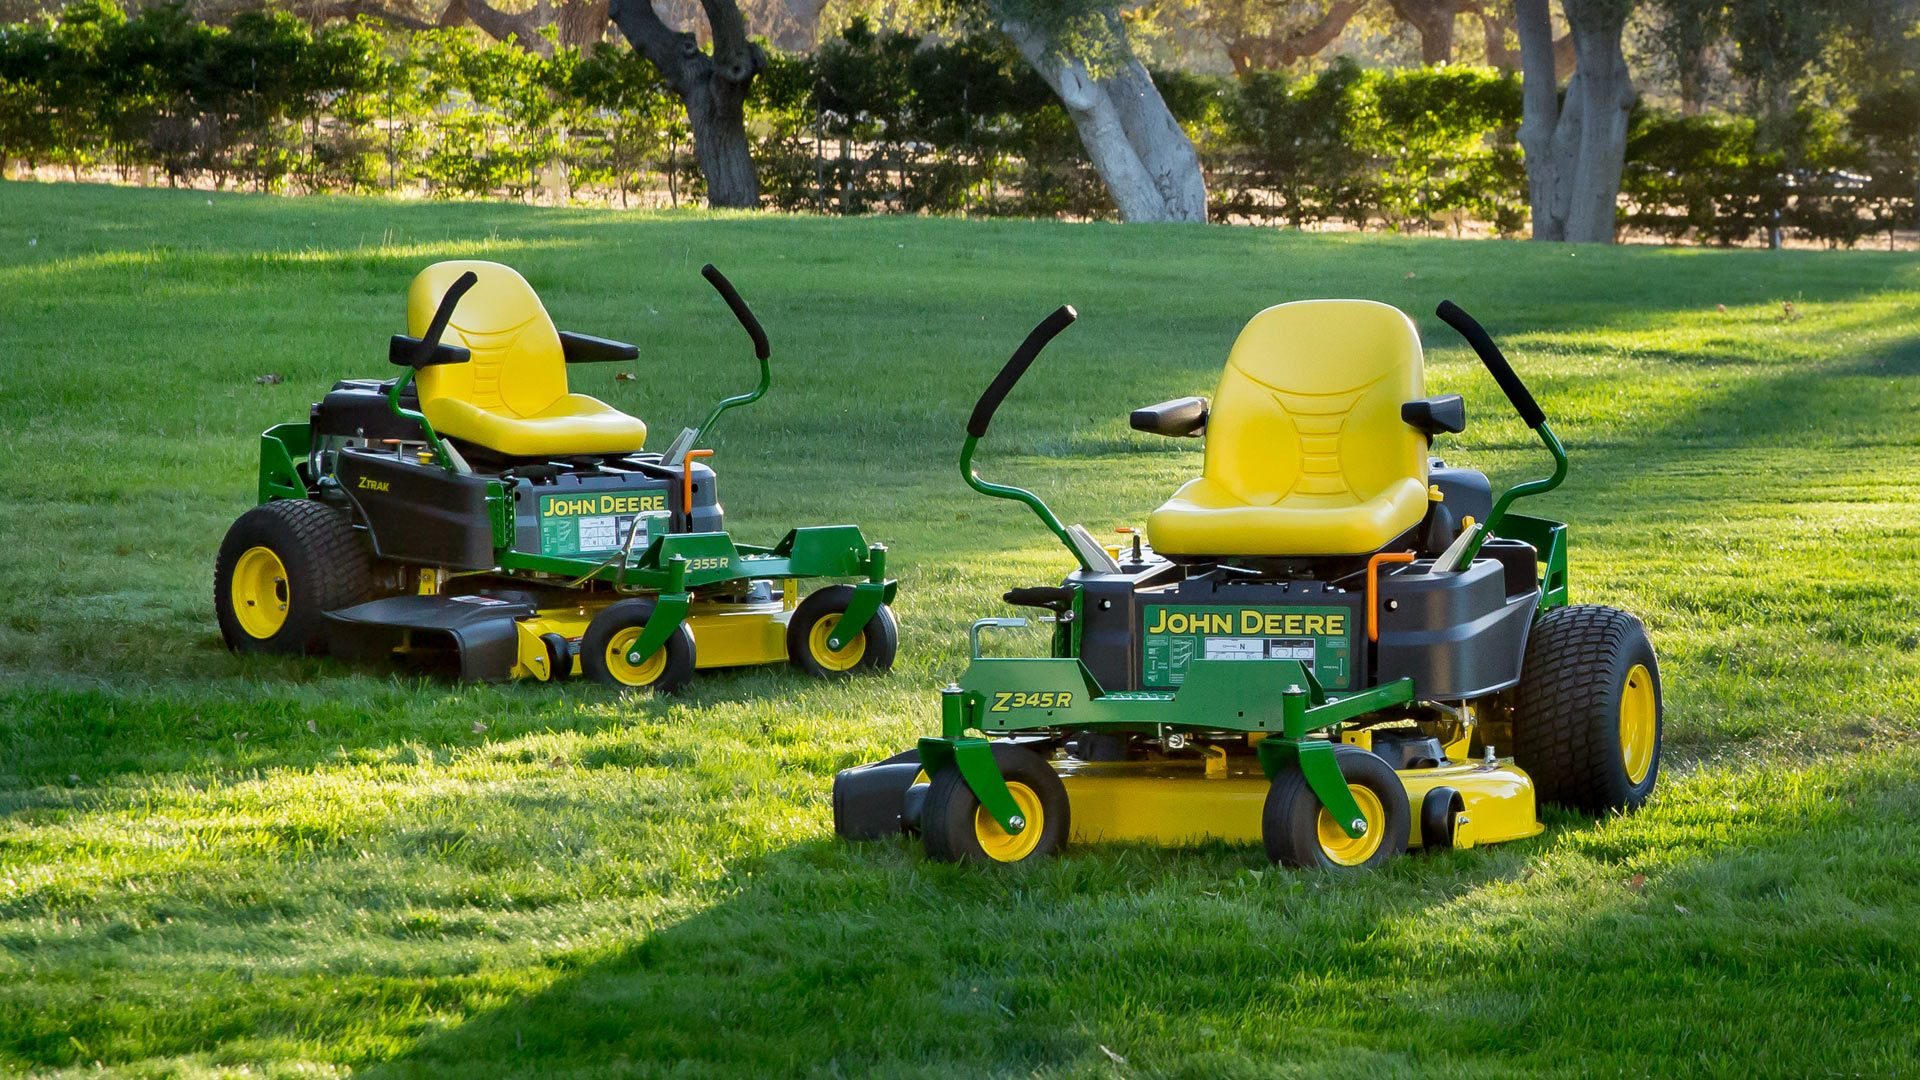 John Deere Zero Turn Mowers